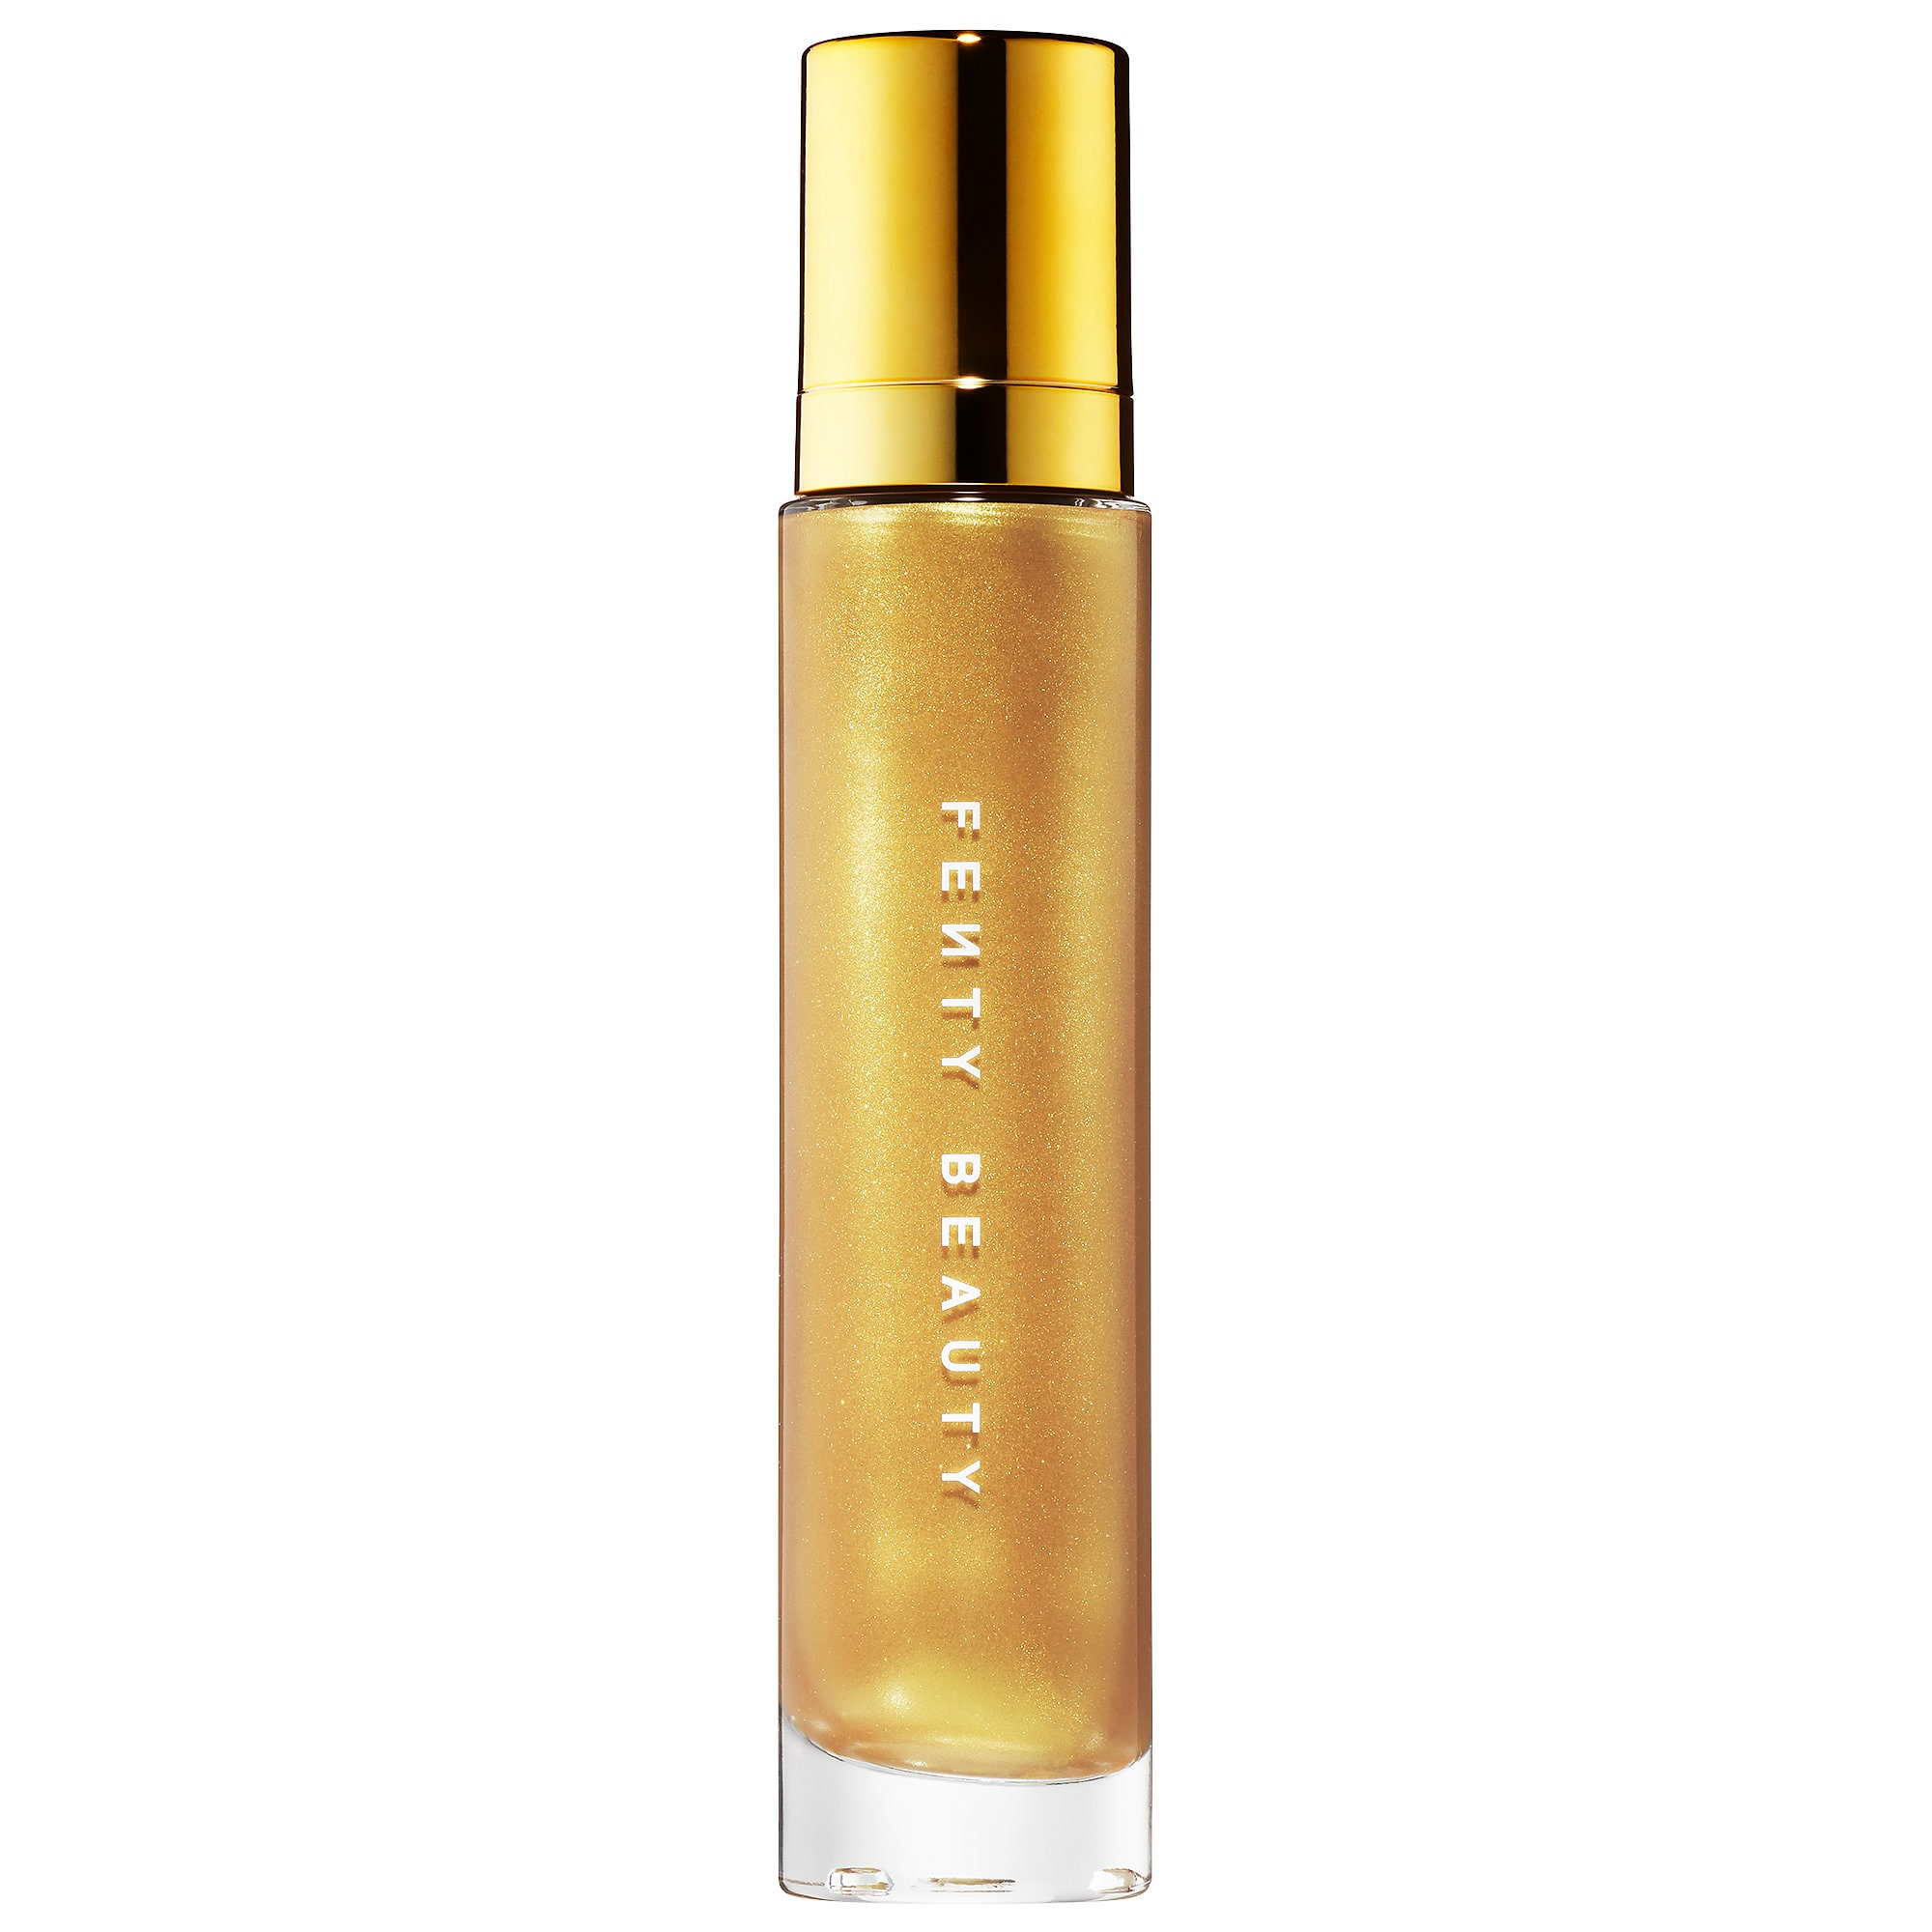 Fenty Gold Body Shimmer